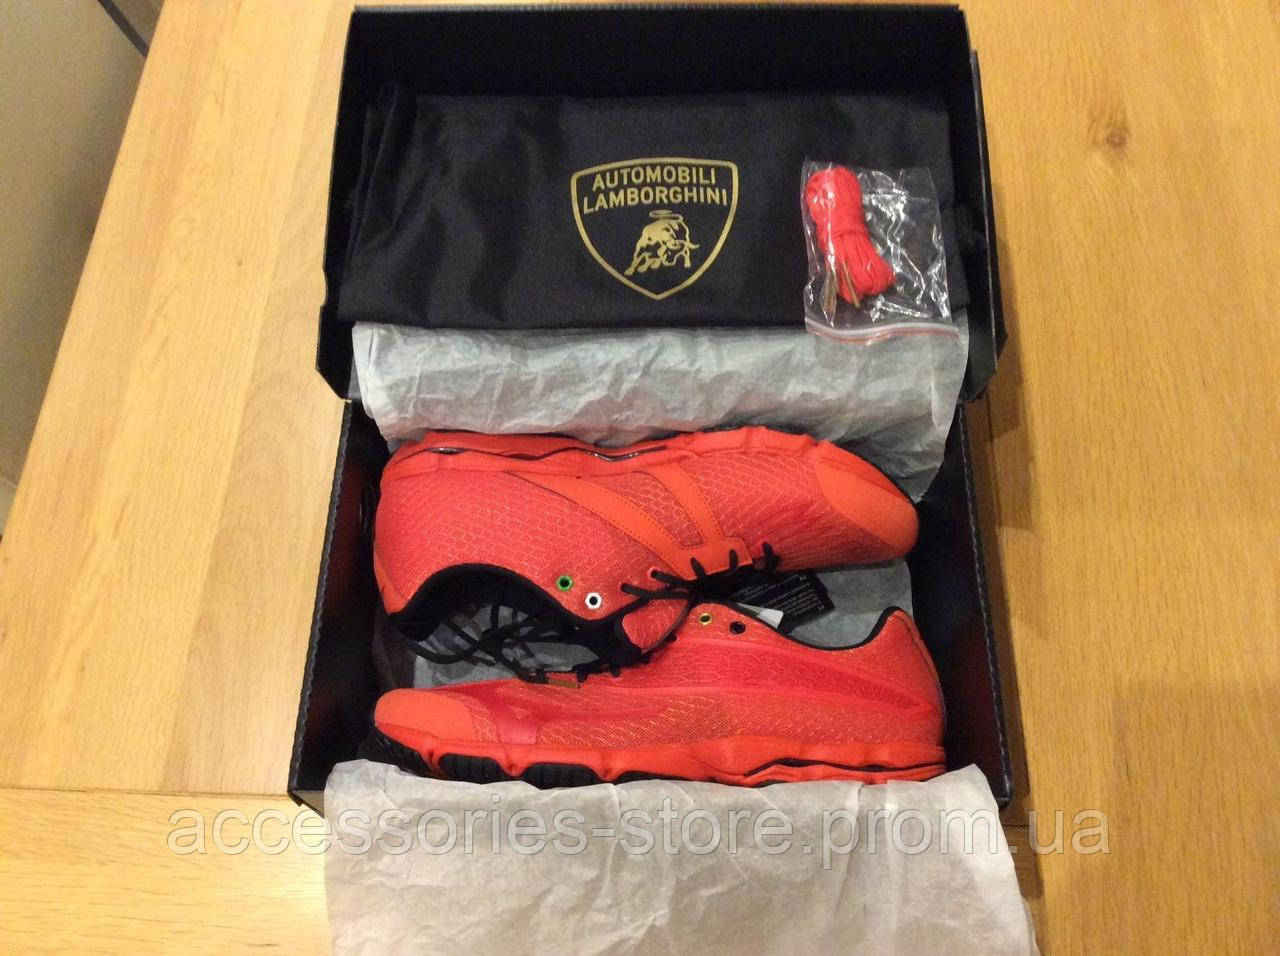 Кроссовки Automobili Lamborghini Mizuno Wave Running Shoes Boxed, RED